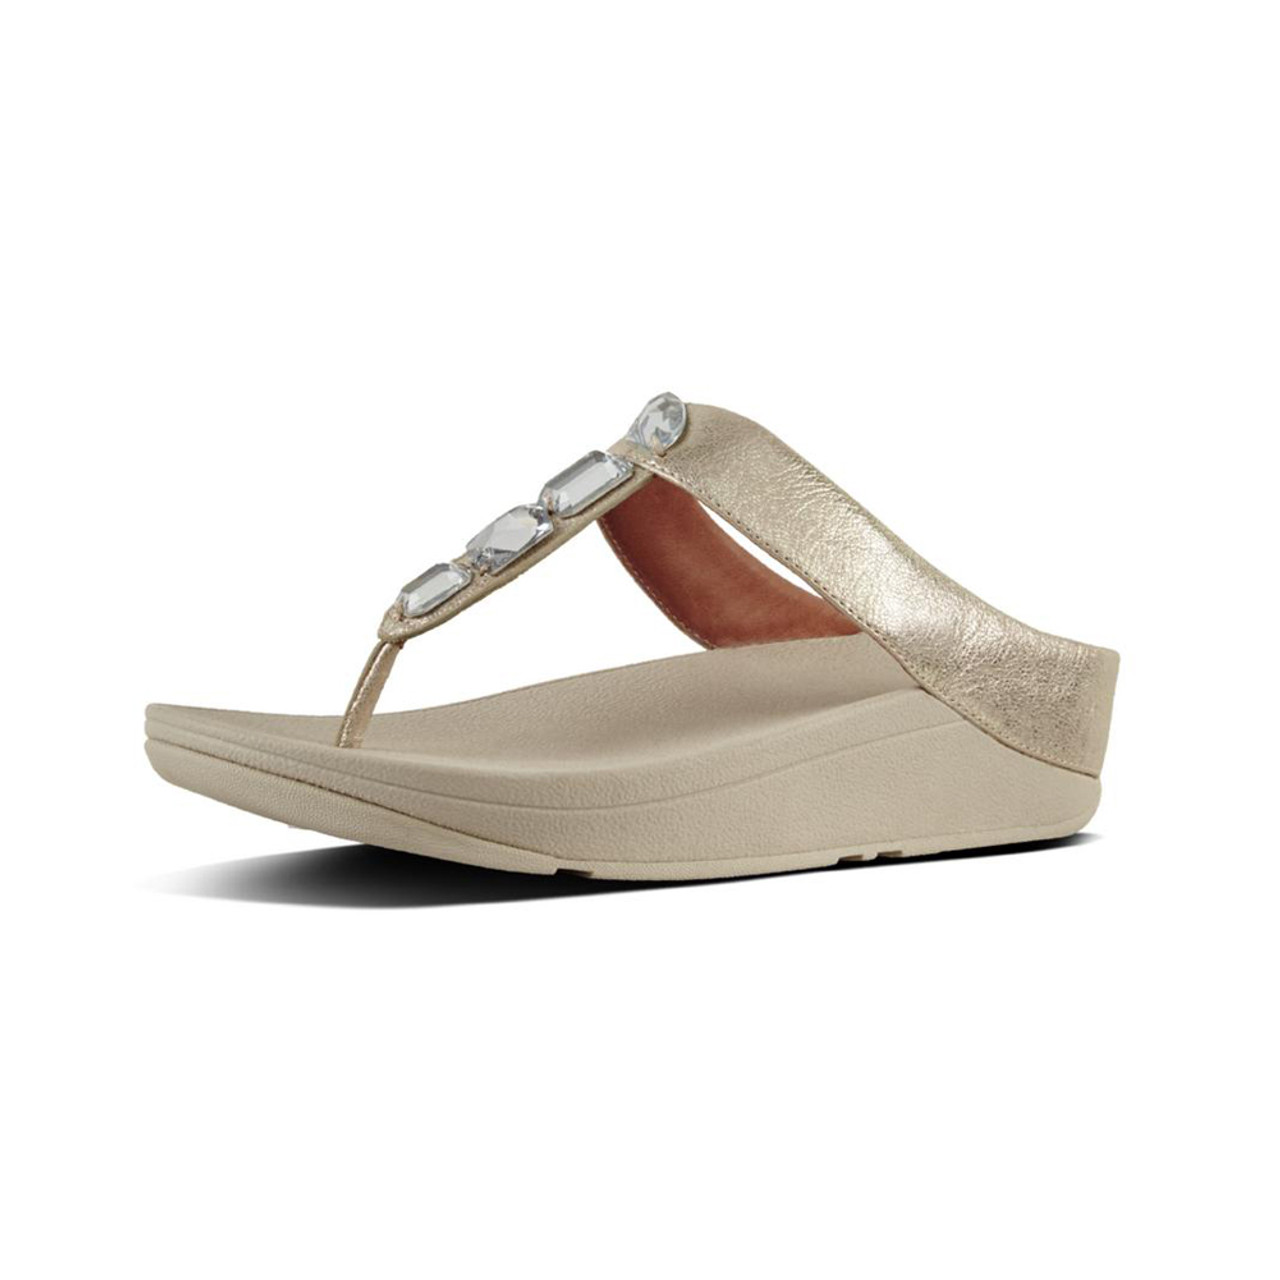 70483485a50f86 Fitflop Women s Roka Leather Thong Silver - Shop now   Shoolu.com